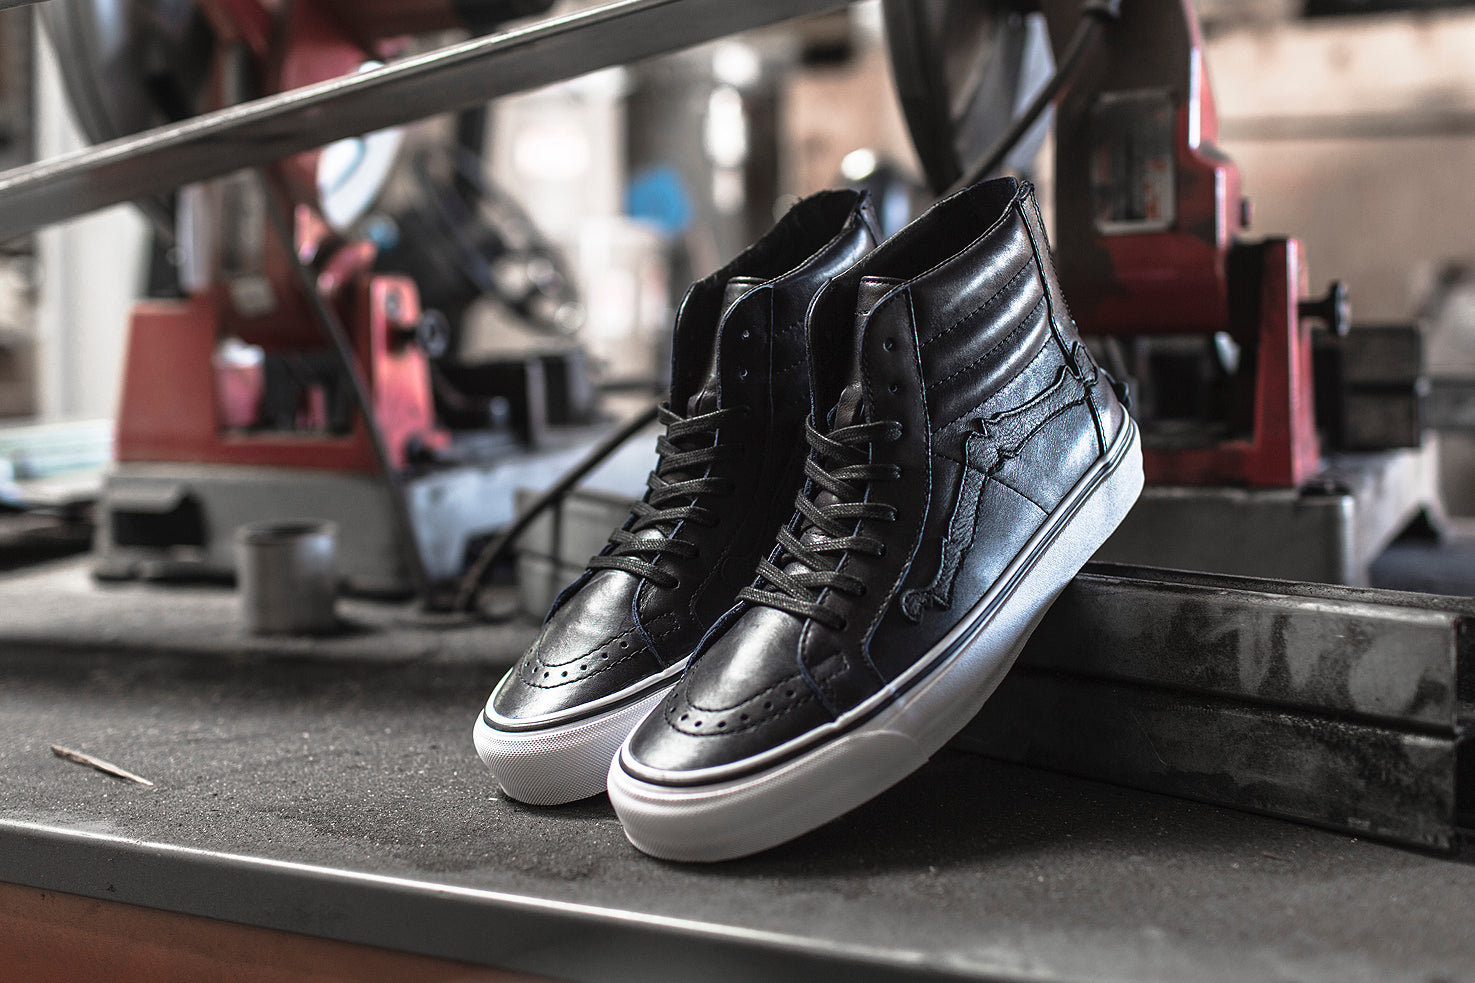 Blends x Vans Vault Sk8-Hi Reissue Zip LX - Peacoat Feature